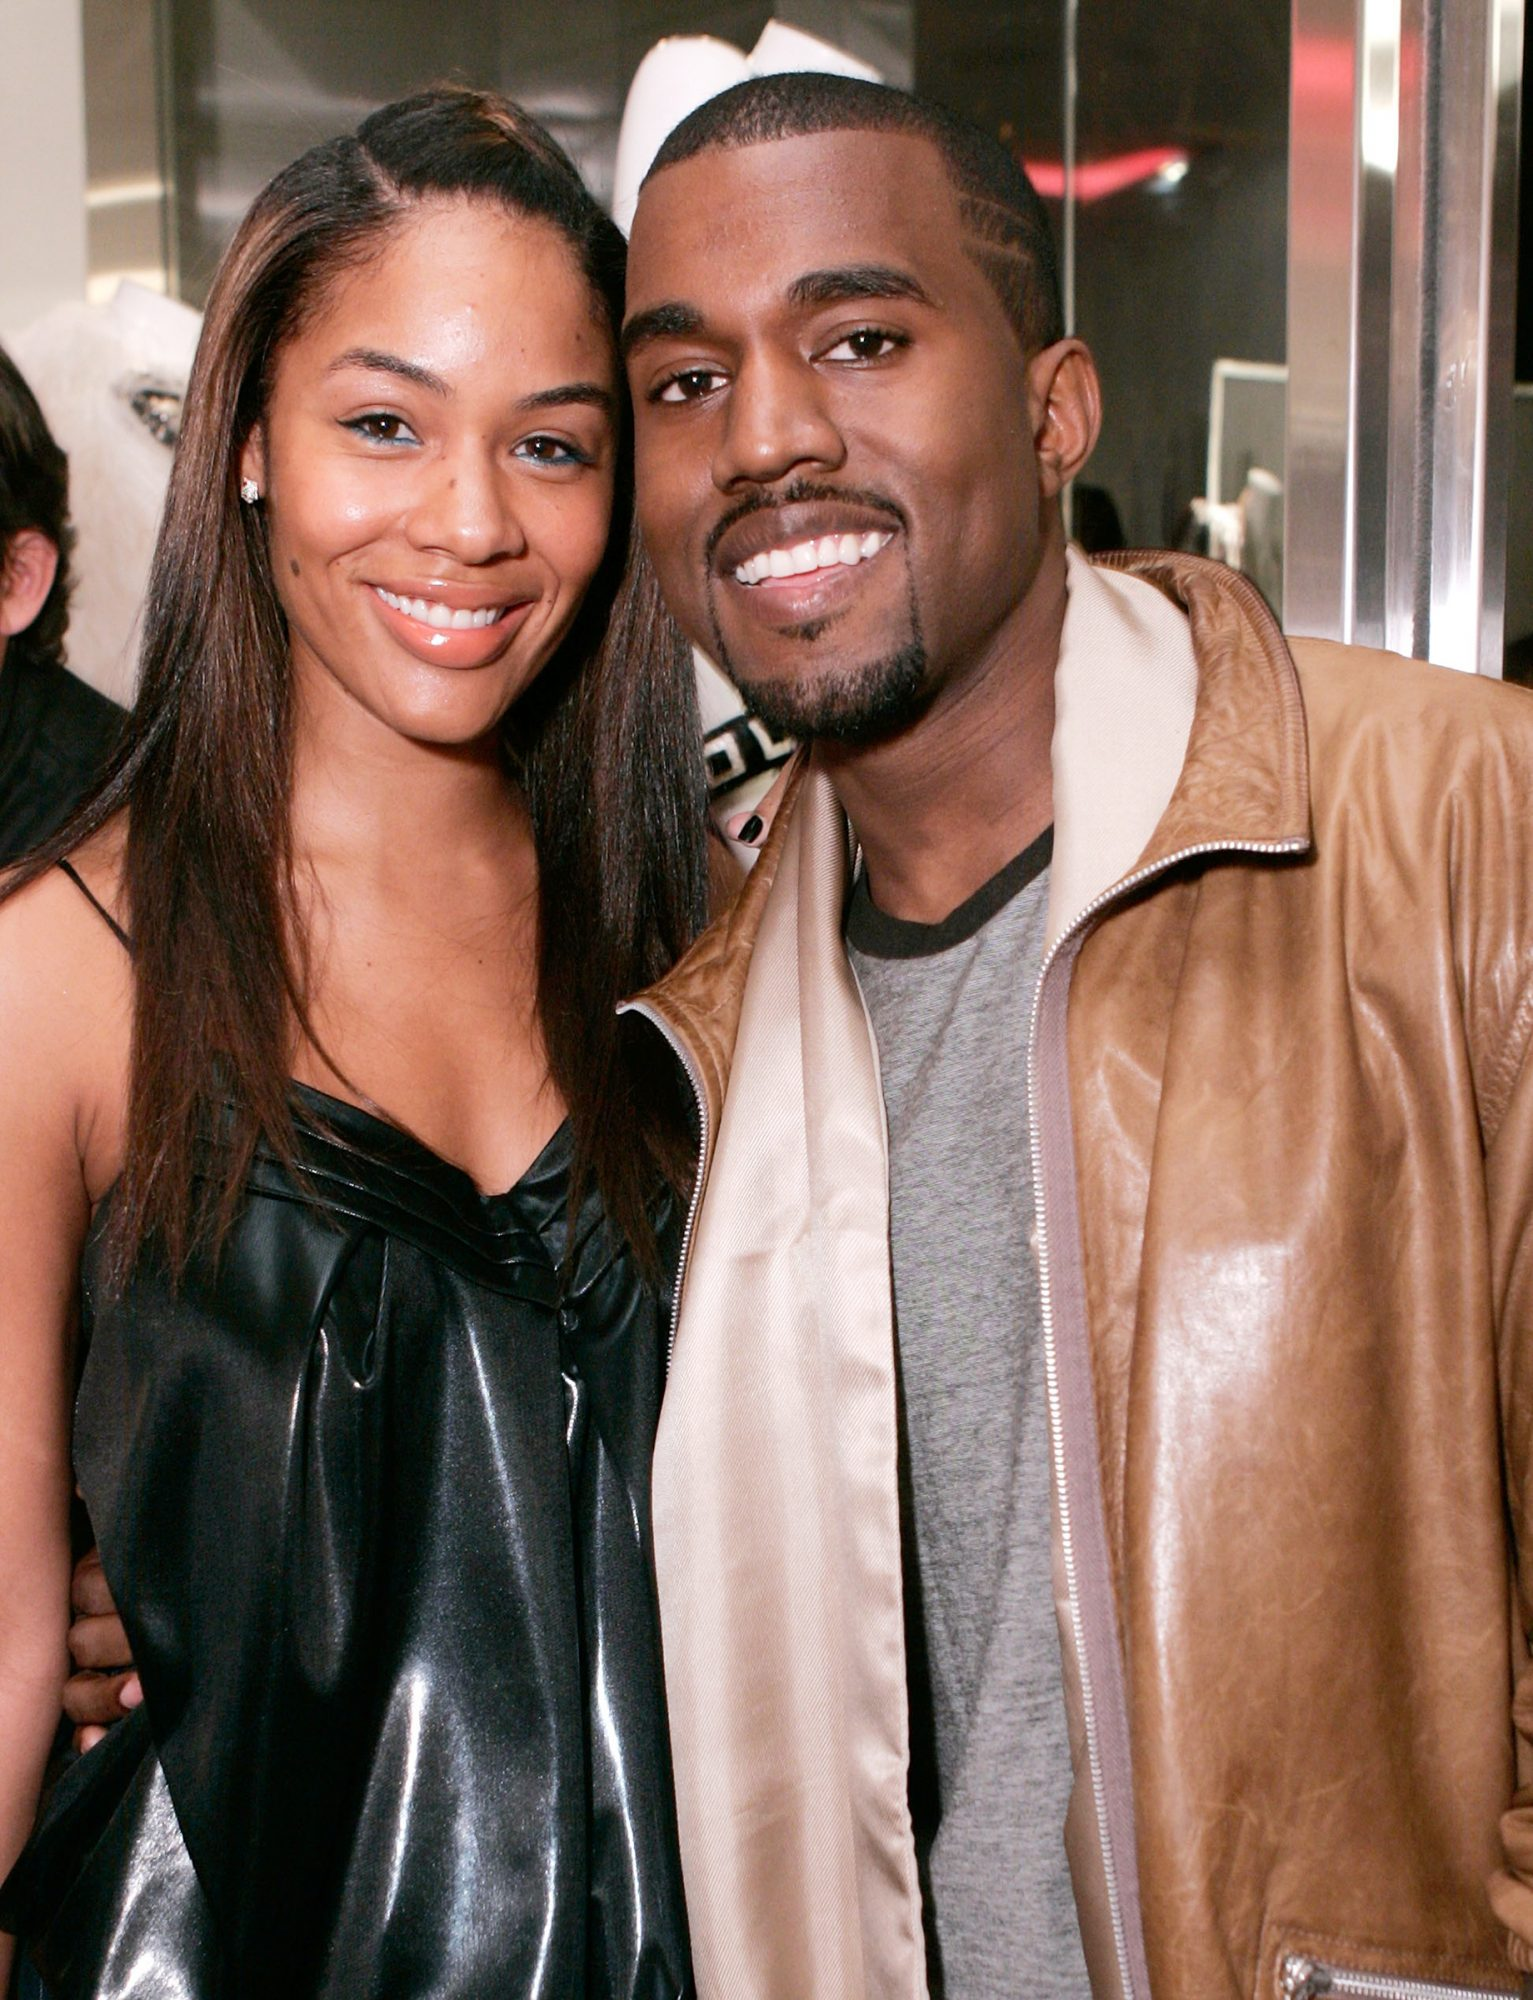 Alexis Pheiffer and Kanye West